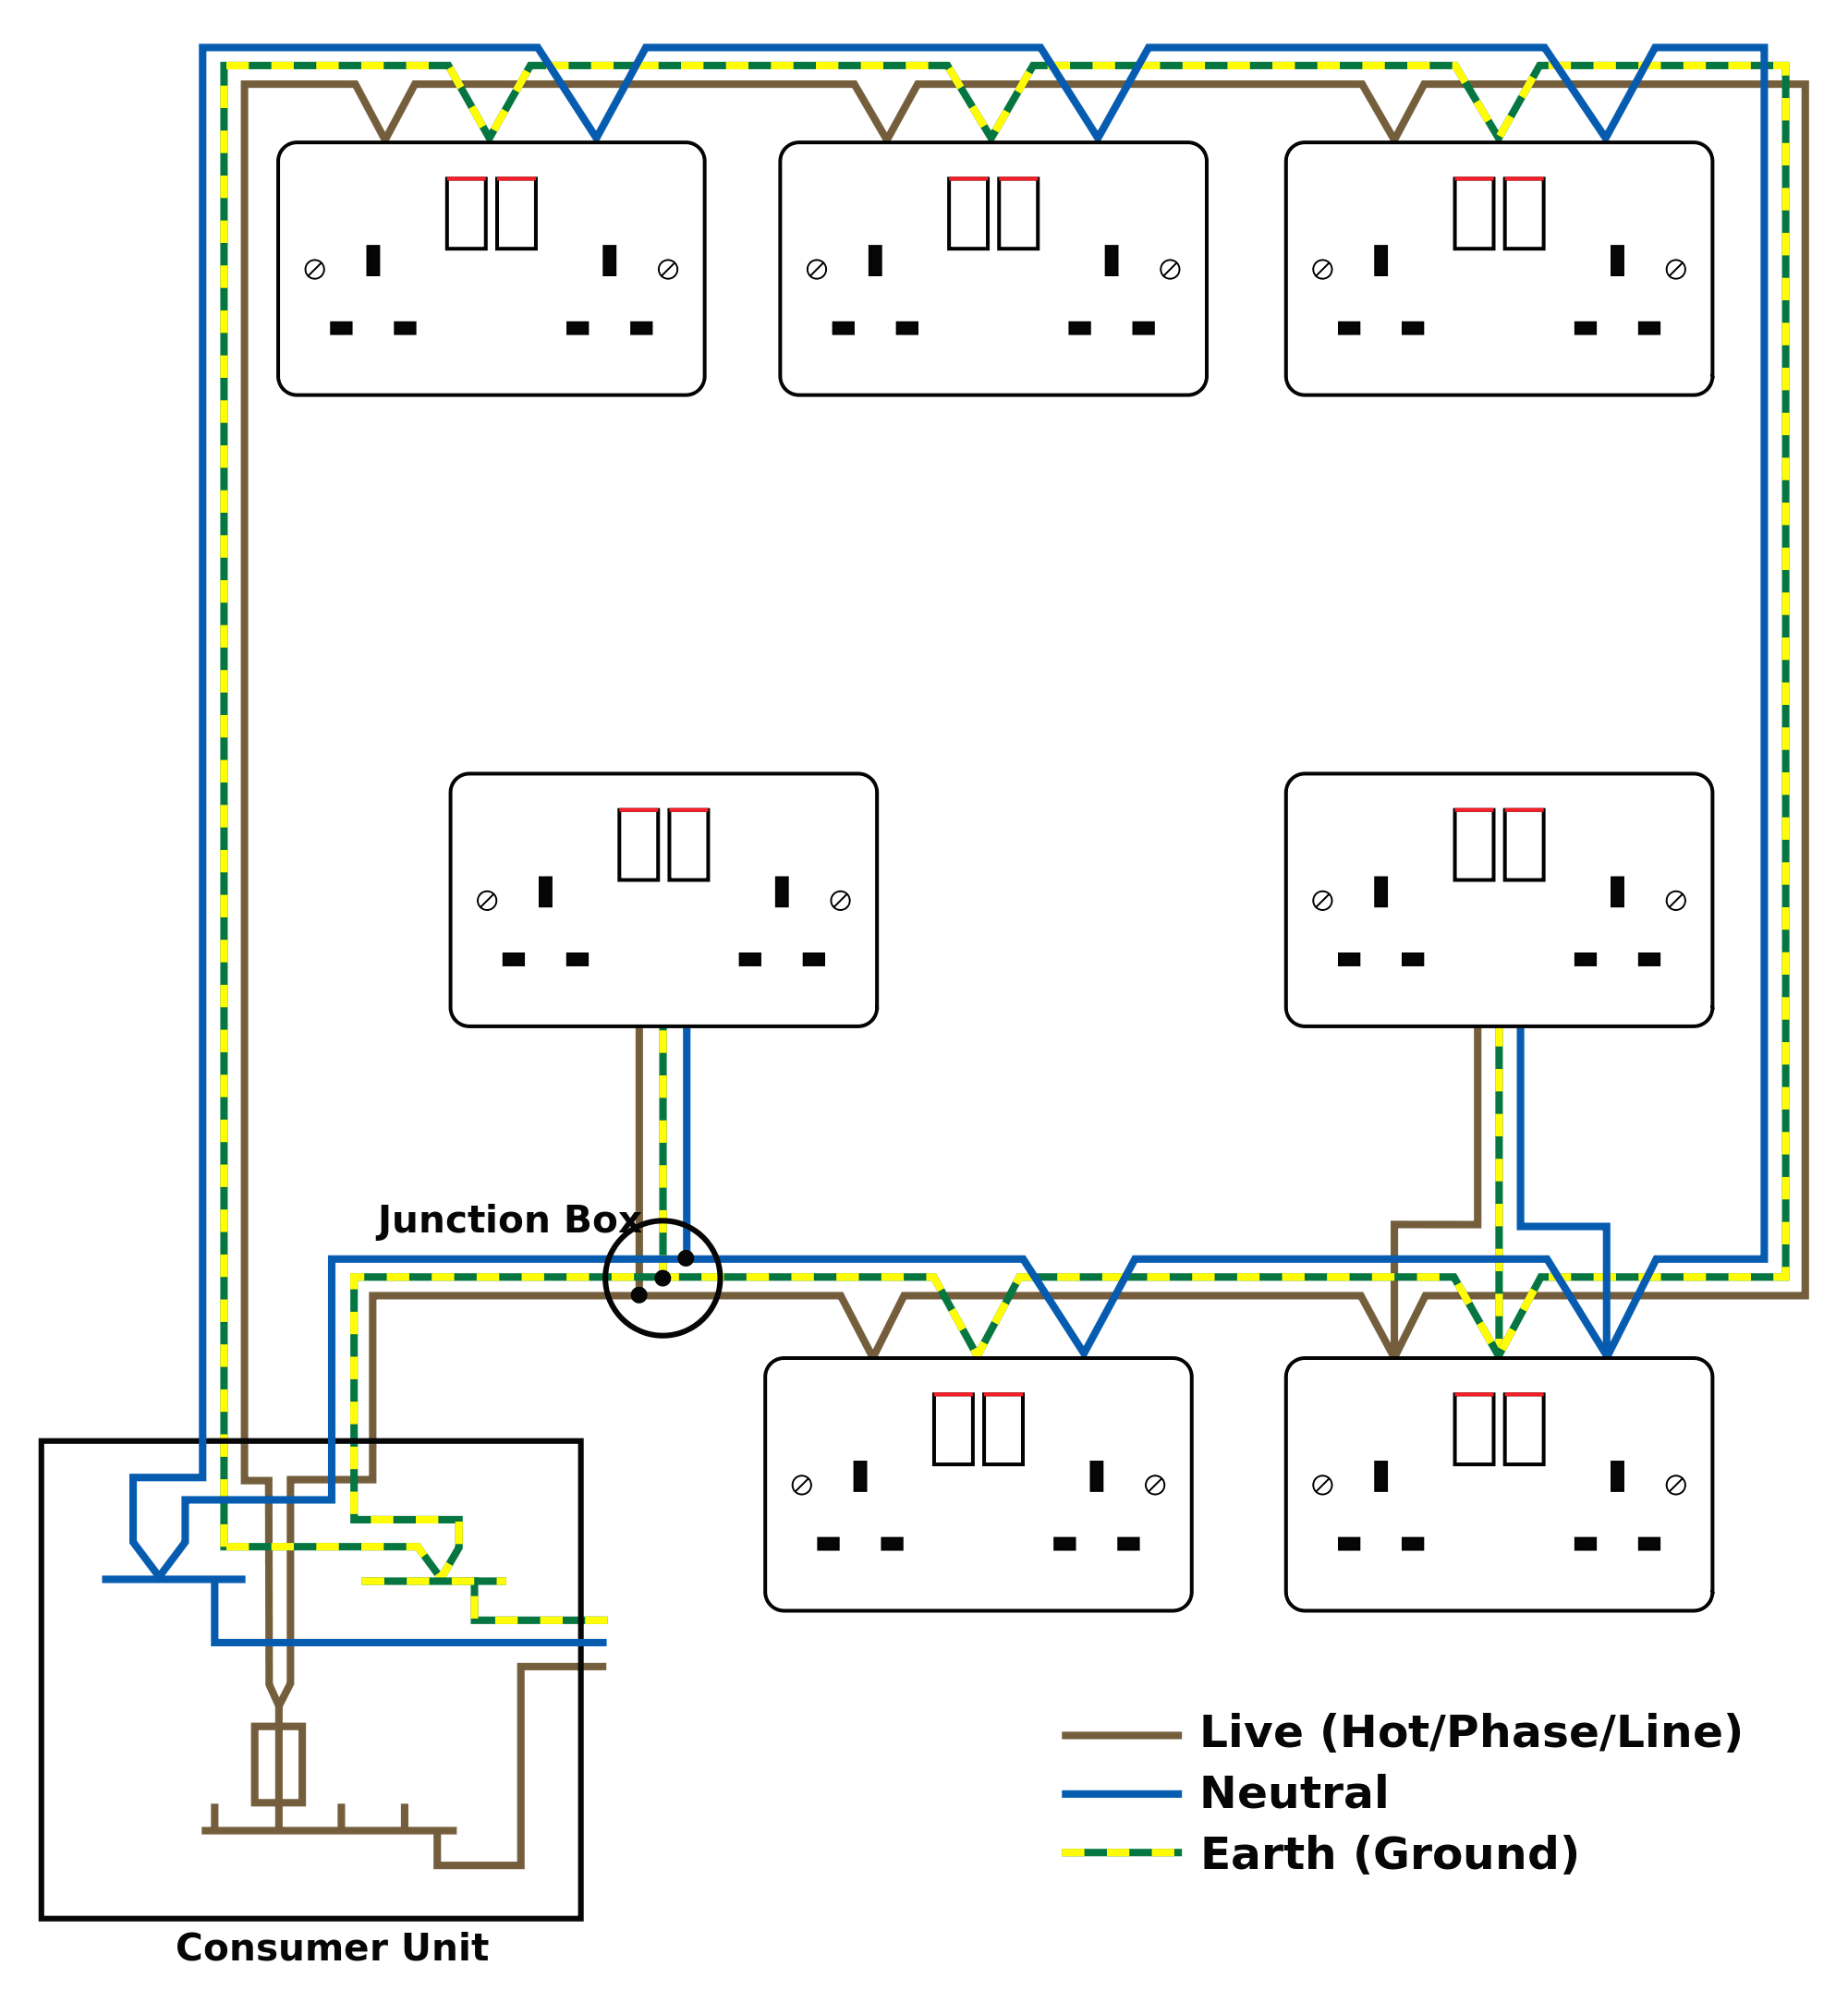 new wiring diagram for house lighting circuit pdf #diagram #diagramsample  #diagramtemplate check more at https://morningculture.co/wiring-diagram -for-house-ligh…  pinterest